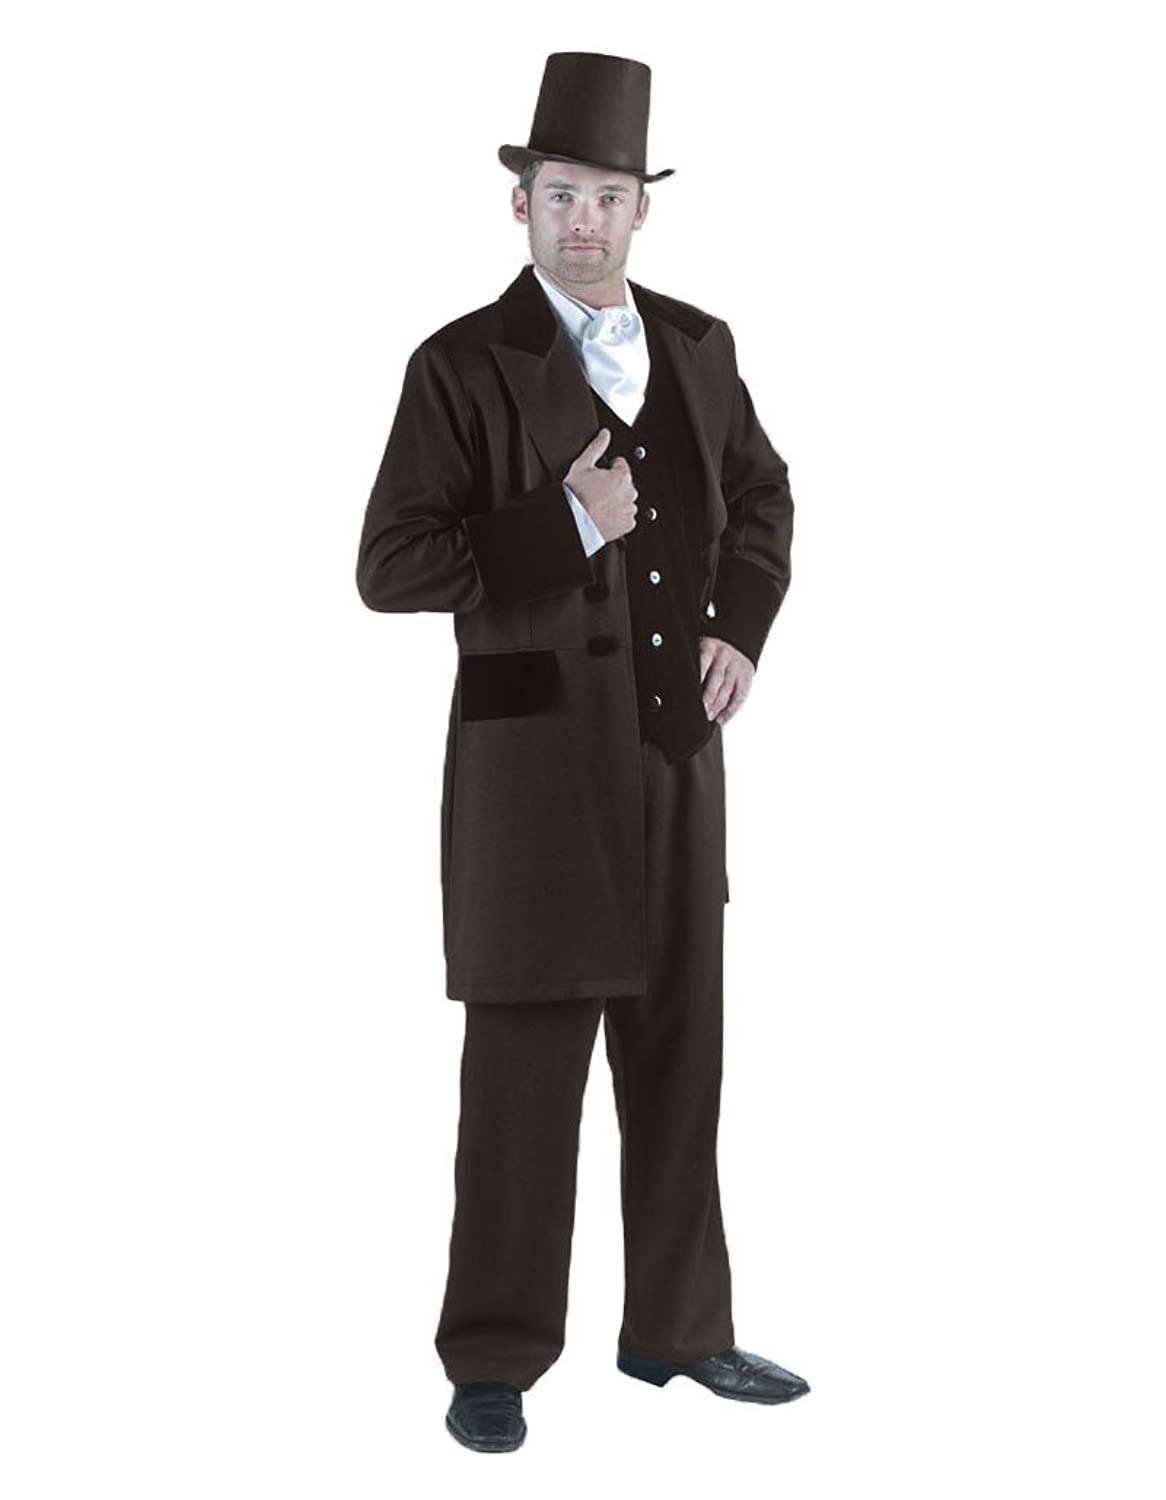 Vintage Men's Costumes – 1920s, 1930s, 1940s, 1950s, 1960s Mens Rhett Butler Suit Theater Costume $249.99 AT vintagedancer.com